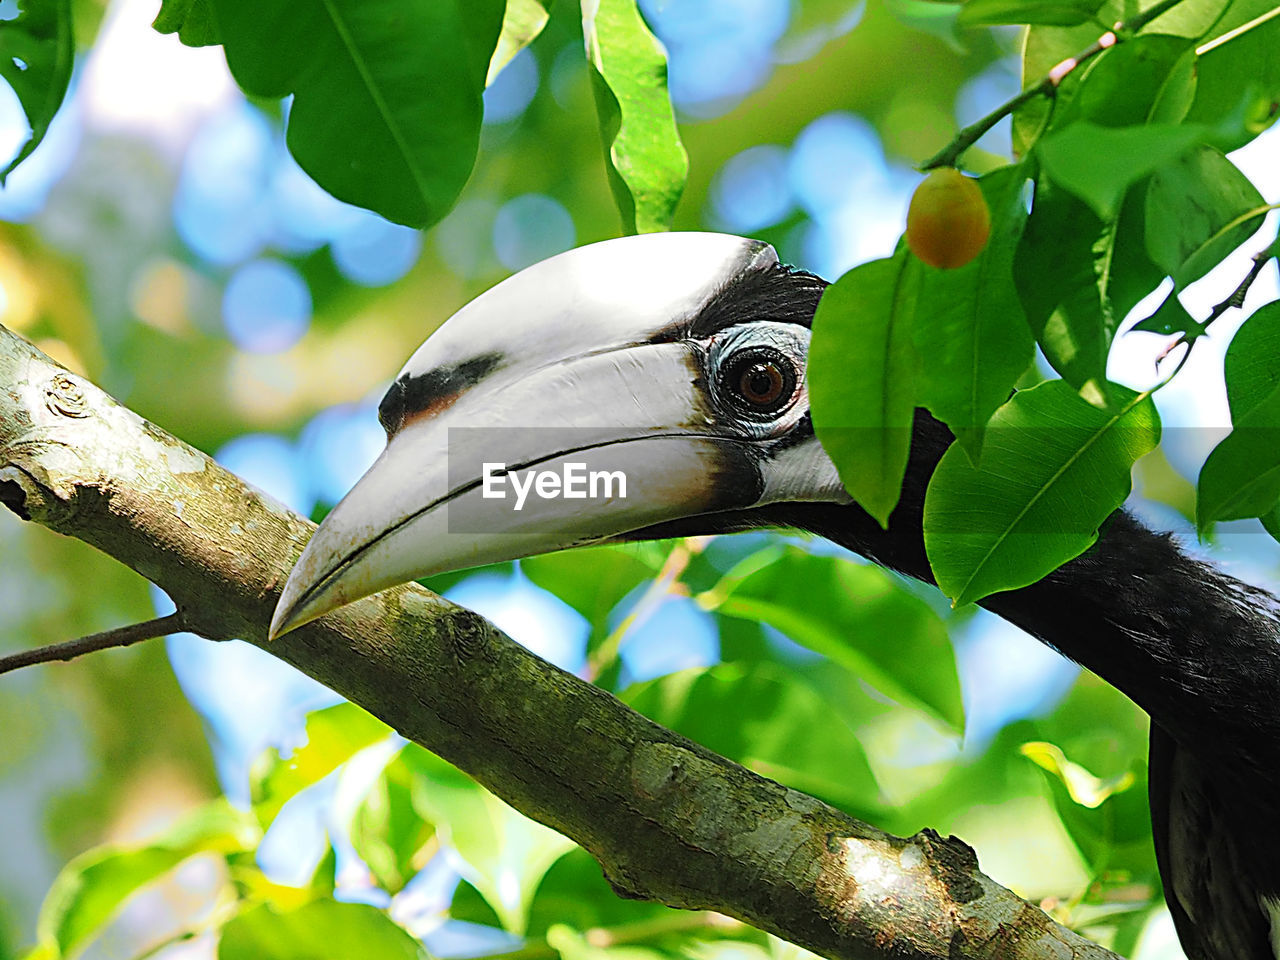 animal themes, animal, leaf, vertebrate, plant part, one animal, bird, plant, animals in the wild, animal wildlife, tree, branch, focus on foreground, no people, low angle view, green color, nature, perching, close-up, day, beak, animal head